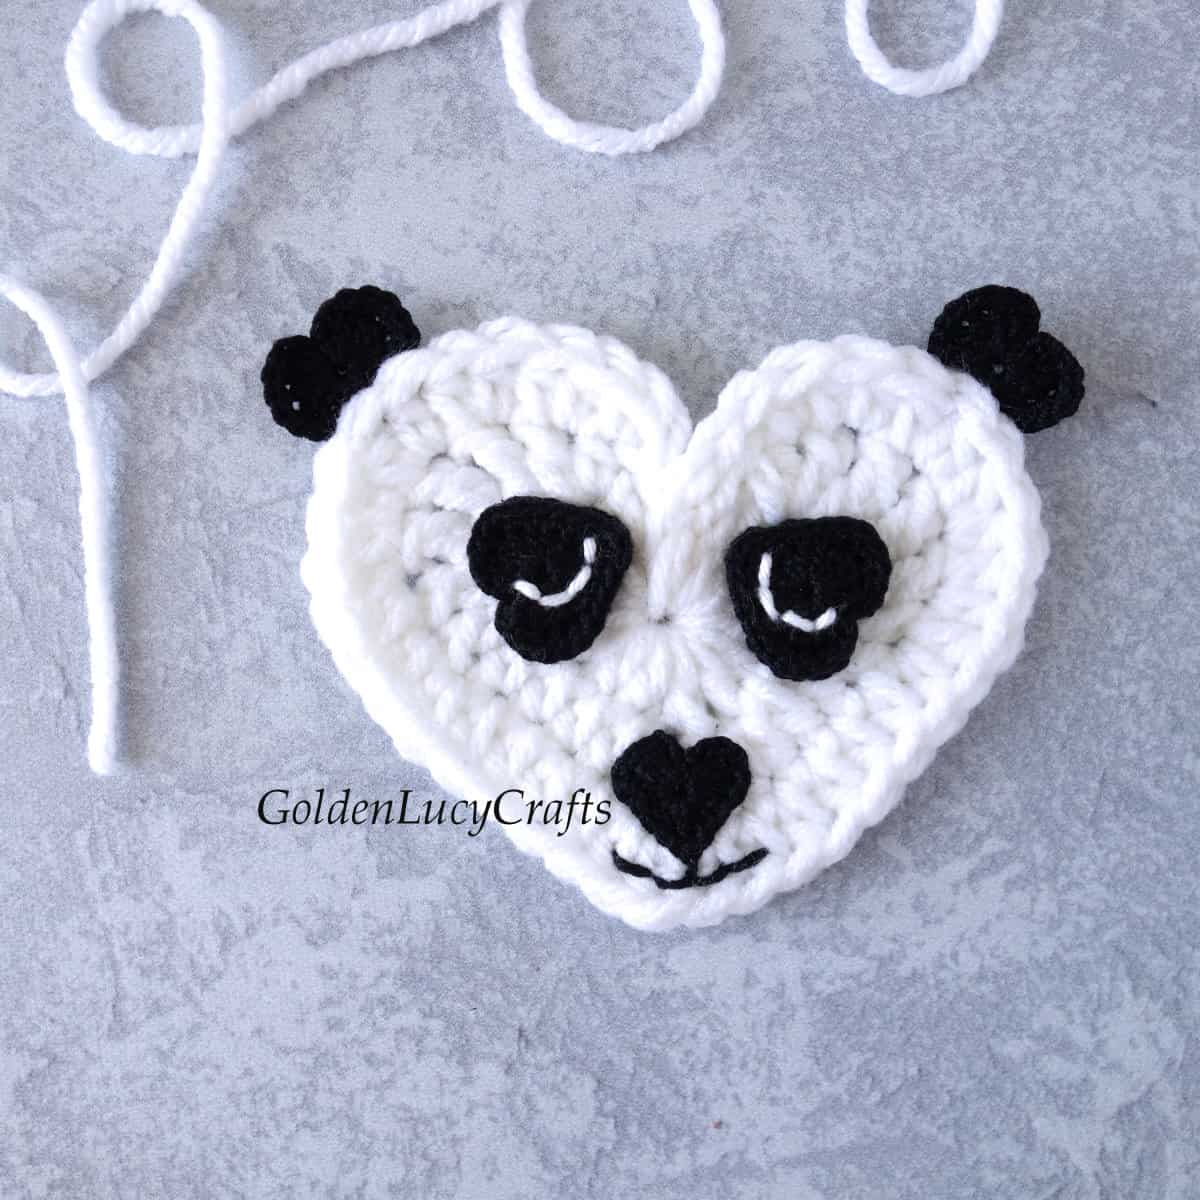 Crochet panda applique with embroidered eyes.